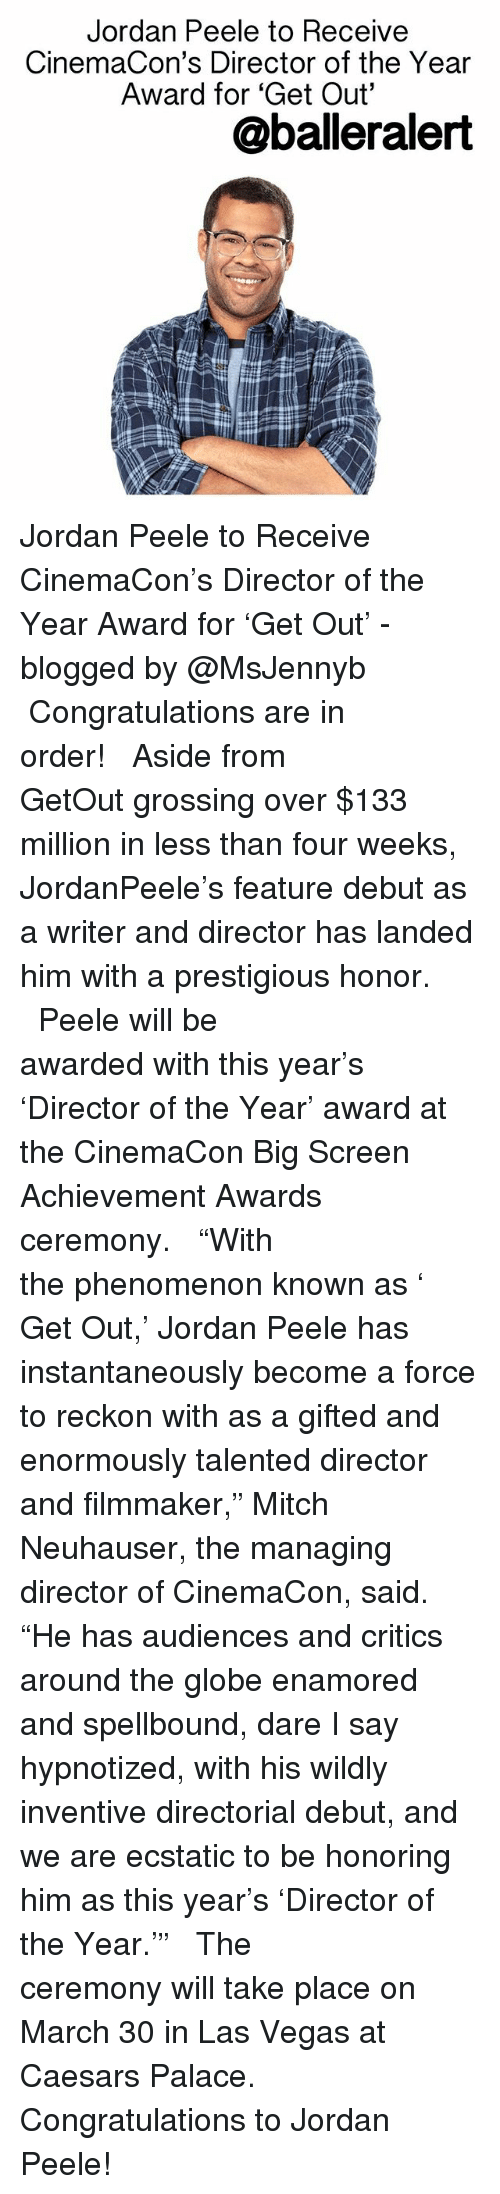 """Reckonize: Jordan Peele to Receive  CinemaCon's Director of the Year  Award for """"Get Out""""  @baller alert Jordan Peele to Receive CinemaCon's Director of the Year Award for 'Get Out' - blogged by @MsJennyb ⠀⠀⠀⠀⠀⠀⠀⠀⠀ ⠀⠀⠀⠀⠀⠀⠀⠀⠀ Congratulations are in order! ⠀⠀⠀⠀⠀⠀⠀⠀⠀ ⠀⠀⠀⠀⠀⠀⠀⠀⠀ Aside from GetOut grossing over $133 million in less than four weeks, JordanPeele's feature debut as a writer and director has landed him with a prestigious honor. ⠀⠀⠀⠀⠀⠀⠀⠀⠀ ⠀⠀⠀⠀⠀⠀⠀⠀⠀ Peele will be awarded with this year's 'Director of the Year' award at the CinemaCon Big Screen Achievement Awards ceremony. ⠀⠀⠀⠀⠀⠀⠀⠀⠀ ⠀⠀⠀⠀⠀⠀⠀⠀⠀ """"With the phenomenon known as ' Get Out,' Jordan Peele has instantaneously become a force to reckon with as a gifted and enormously talented director and filmmaker,"""" Mitch Neuhauser, the managing director of CinemaCon, said. """"He has audiences and critics around the globe enamored and spellbound, dare I say hypnotized, with his wildly inventive directorial debut, and we are ecstatic to be honoring him as this year's 'Director of the Year.'"""" ⠀⠀⠀⠀⠀⠀⠀⠀⠀ ⠀⠀⠀⠀⠀⠀⠀⠀⠀ The ceremony will take place on March 30 in Las Vegas at Caesars Palace. ⠀⠀⠀⠀⠀⠀⠀⠀⠀ ⠀⠀⠀⠀⠀⠀⠀⠀⠀ Congratulations to Jordan Peele!"""